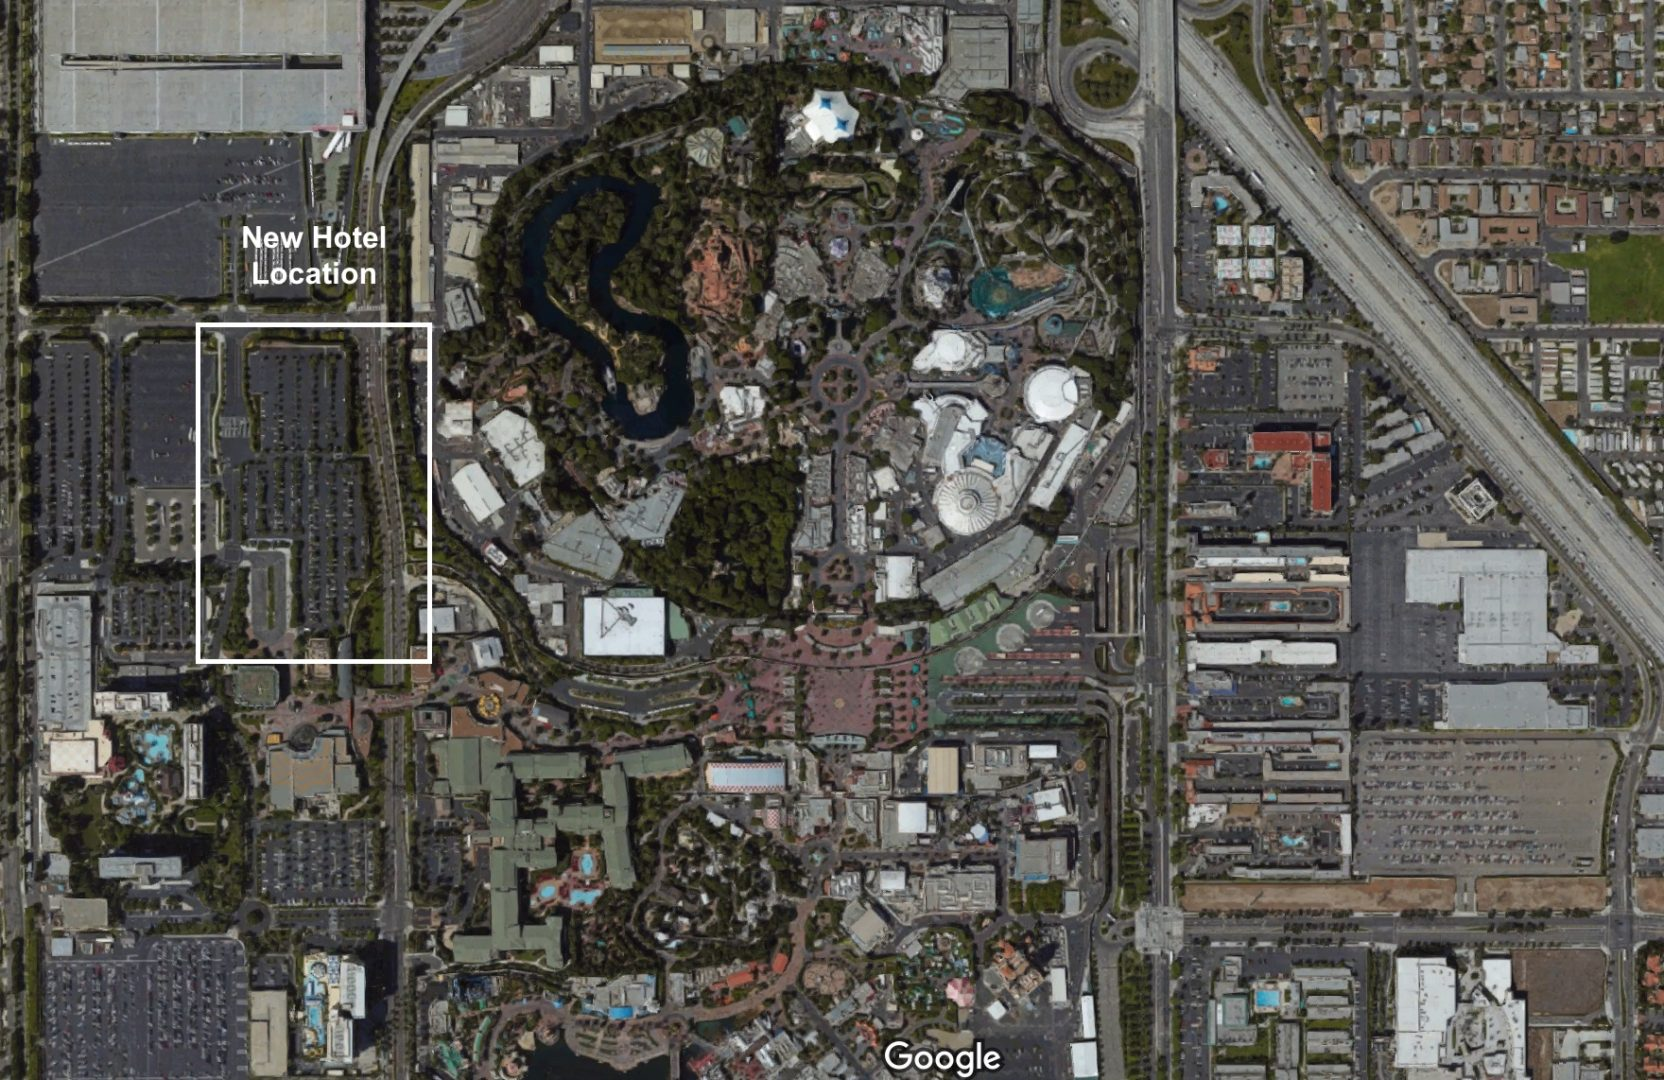 Downtown Disney Hotel Map on